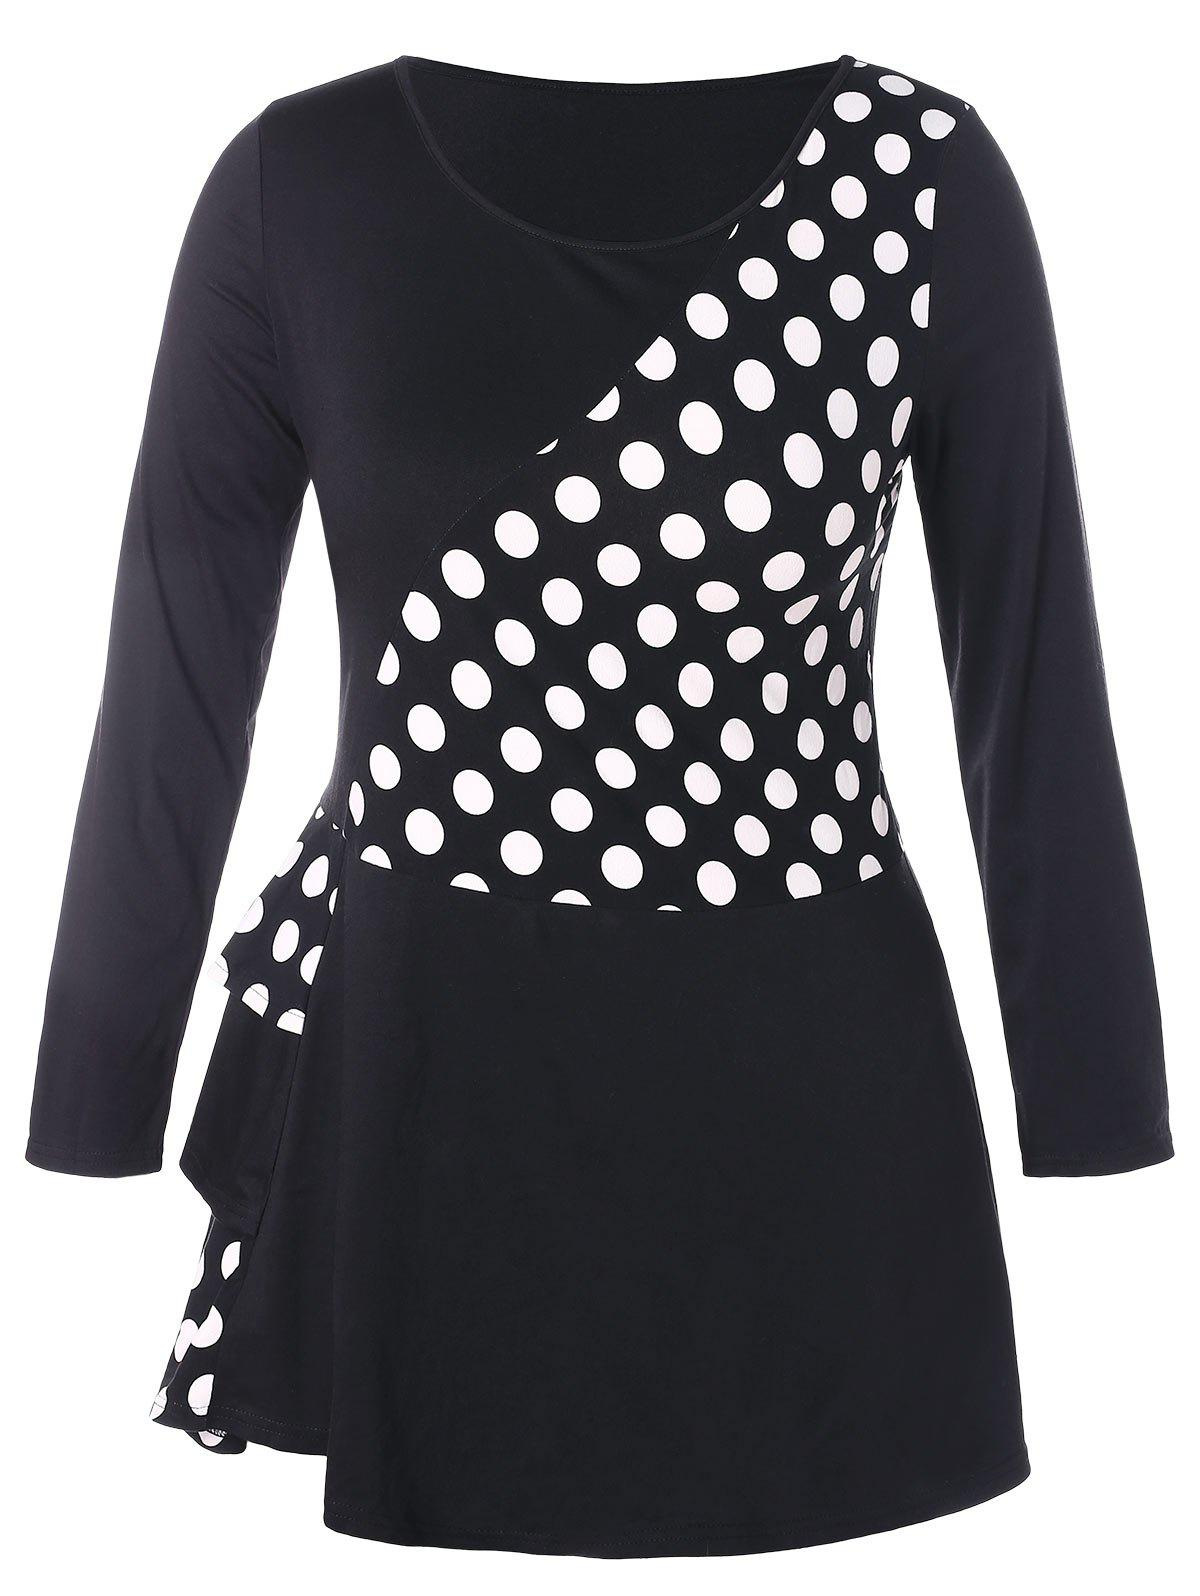 Latest Plus Size Flounce Splicing Polka Dot T-shirt